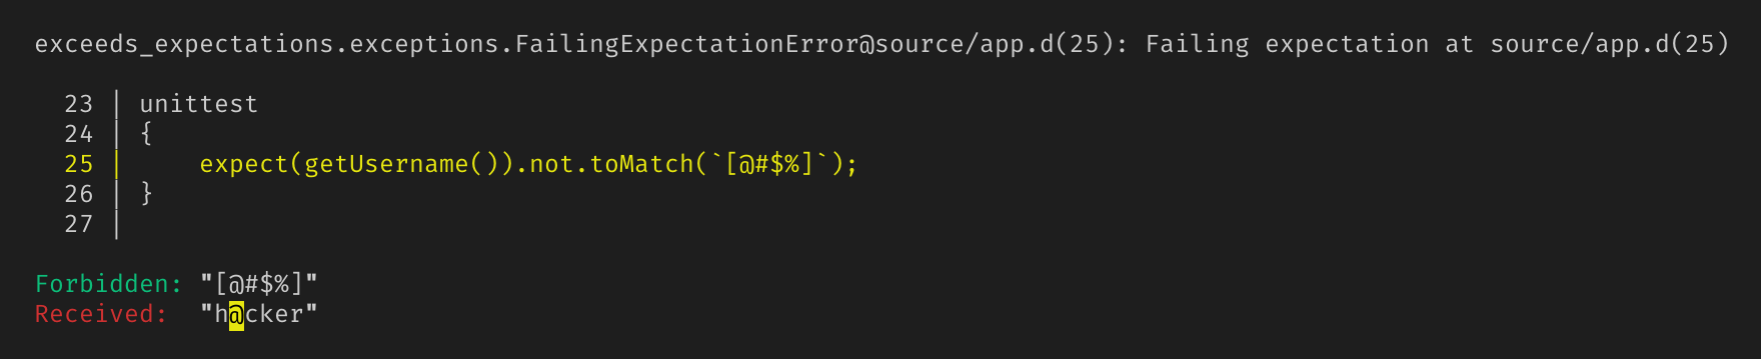 Console output of a failing expectation showing the expected value, the received value, and a snippet of code surrounding the expectation.